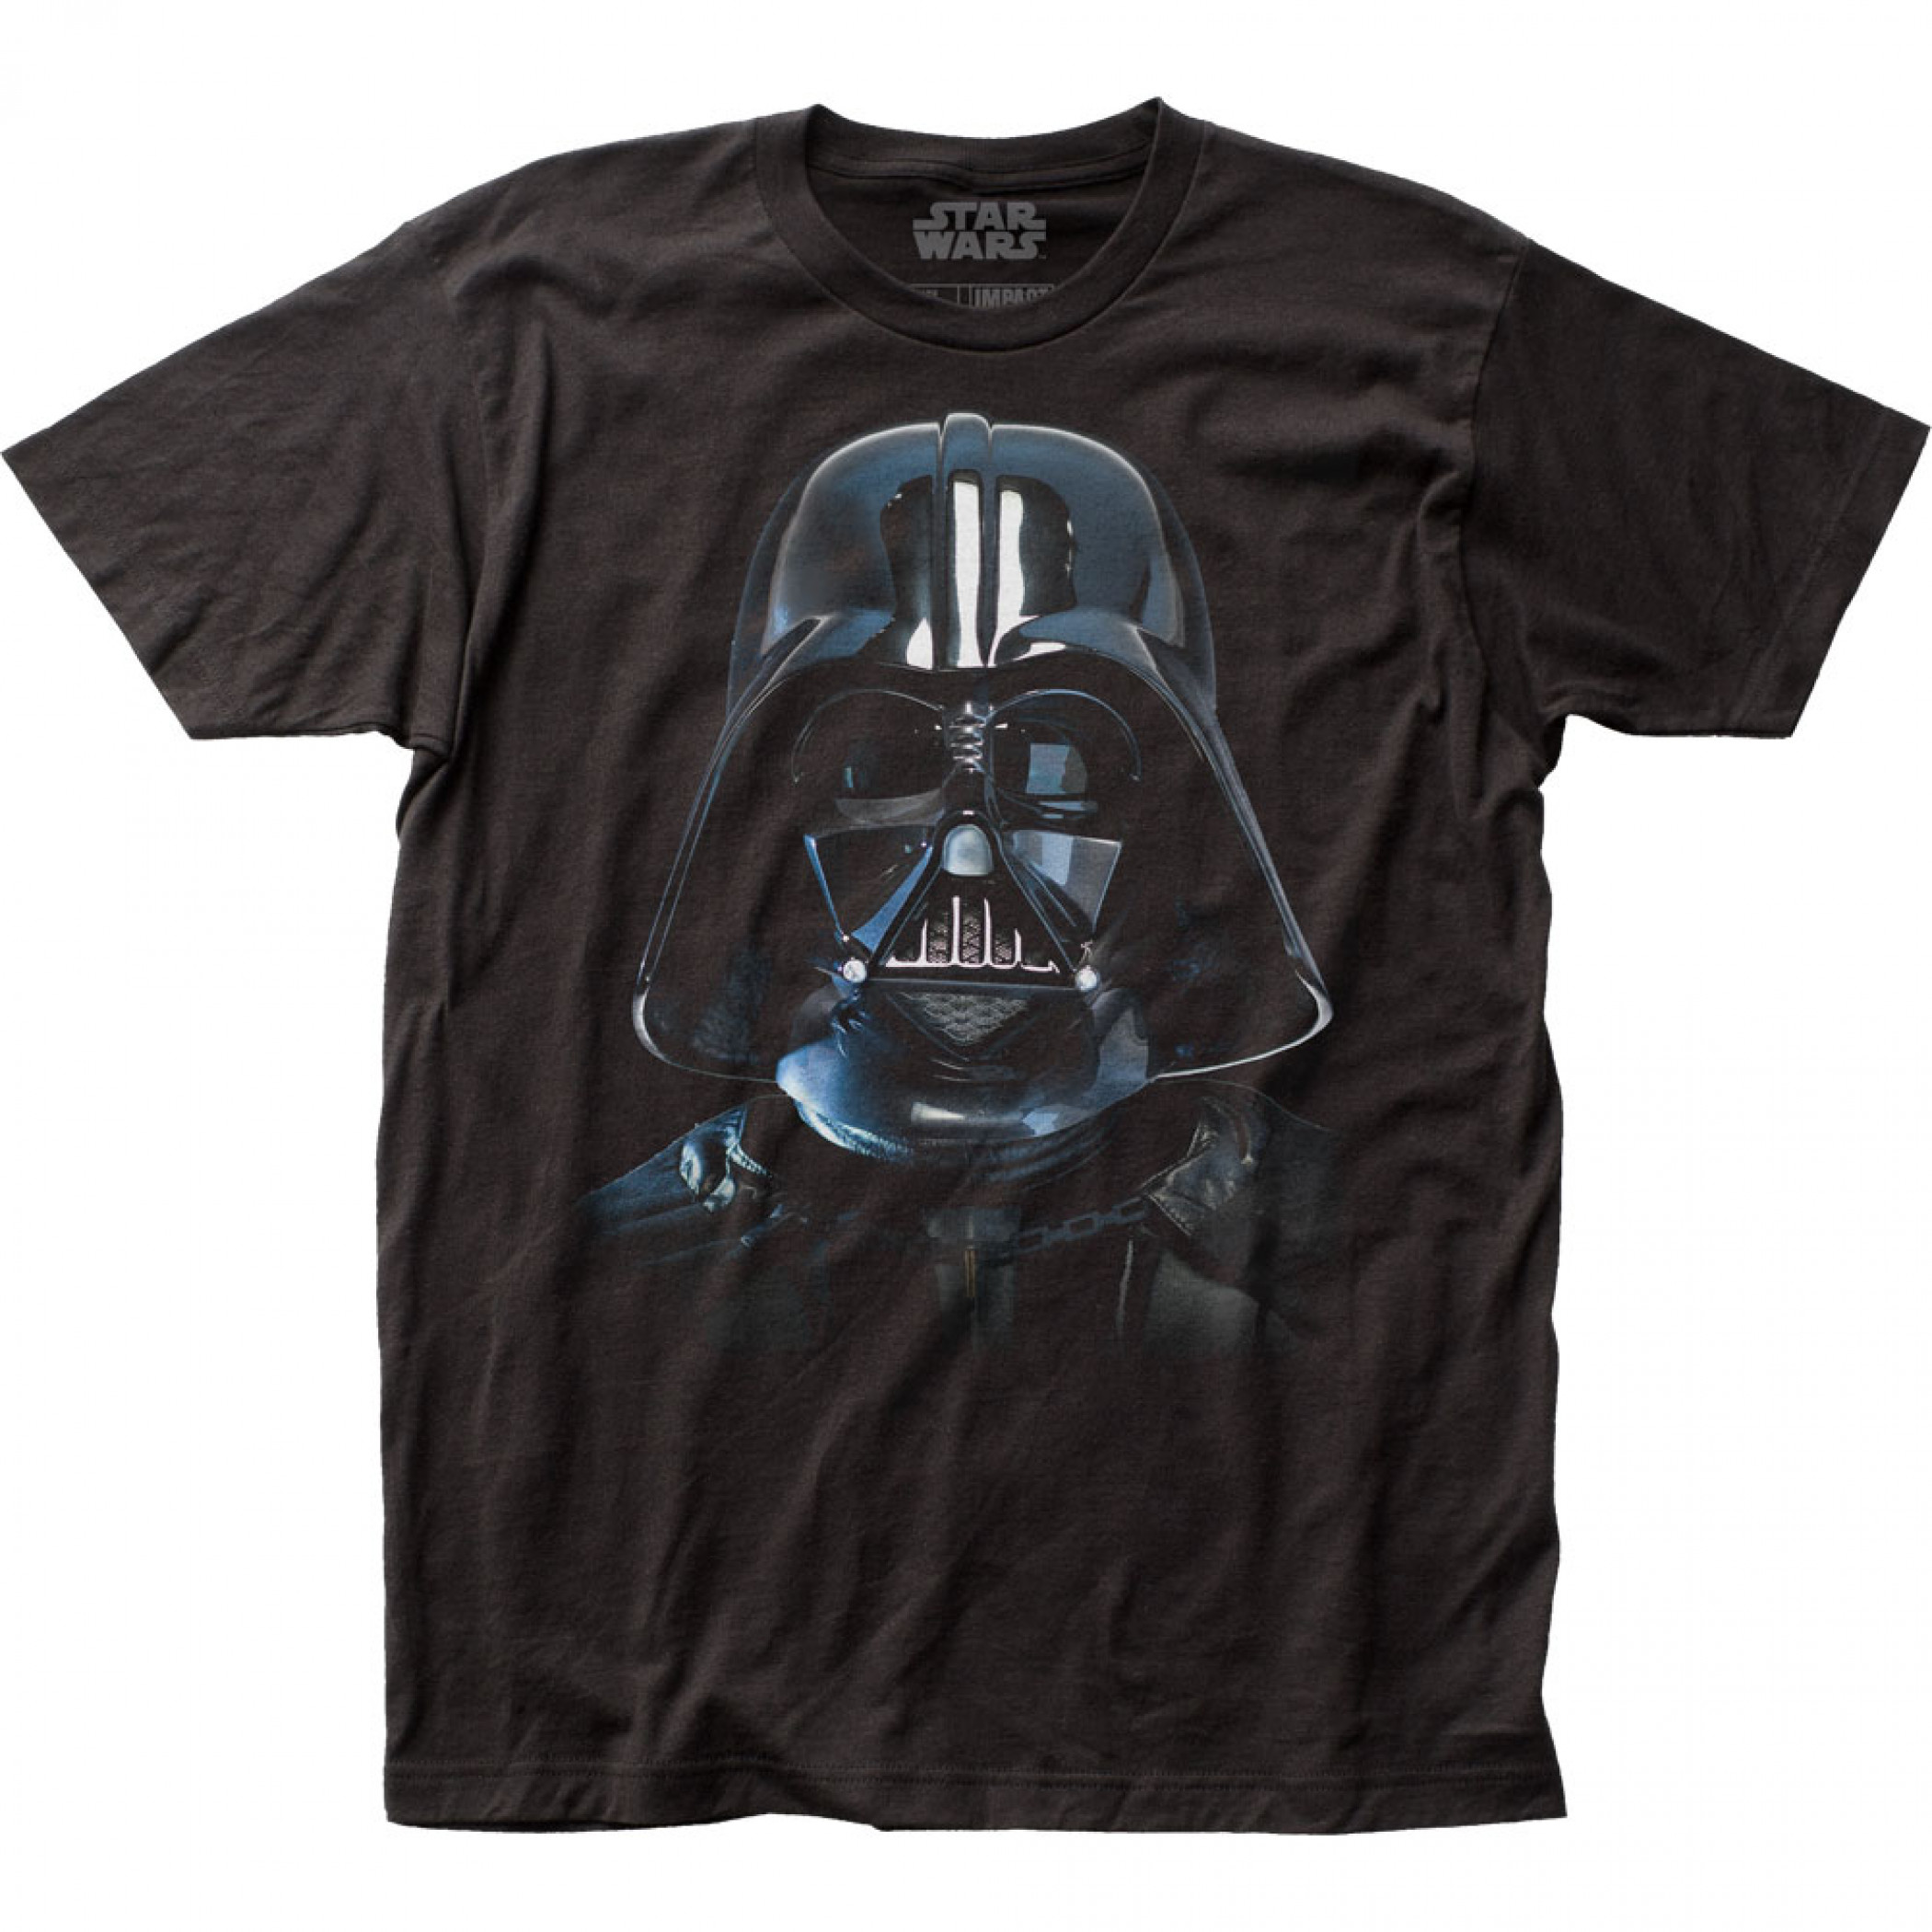 Star Wars Darth Vader Helmet T-Shirt